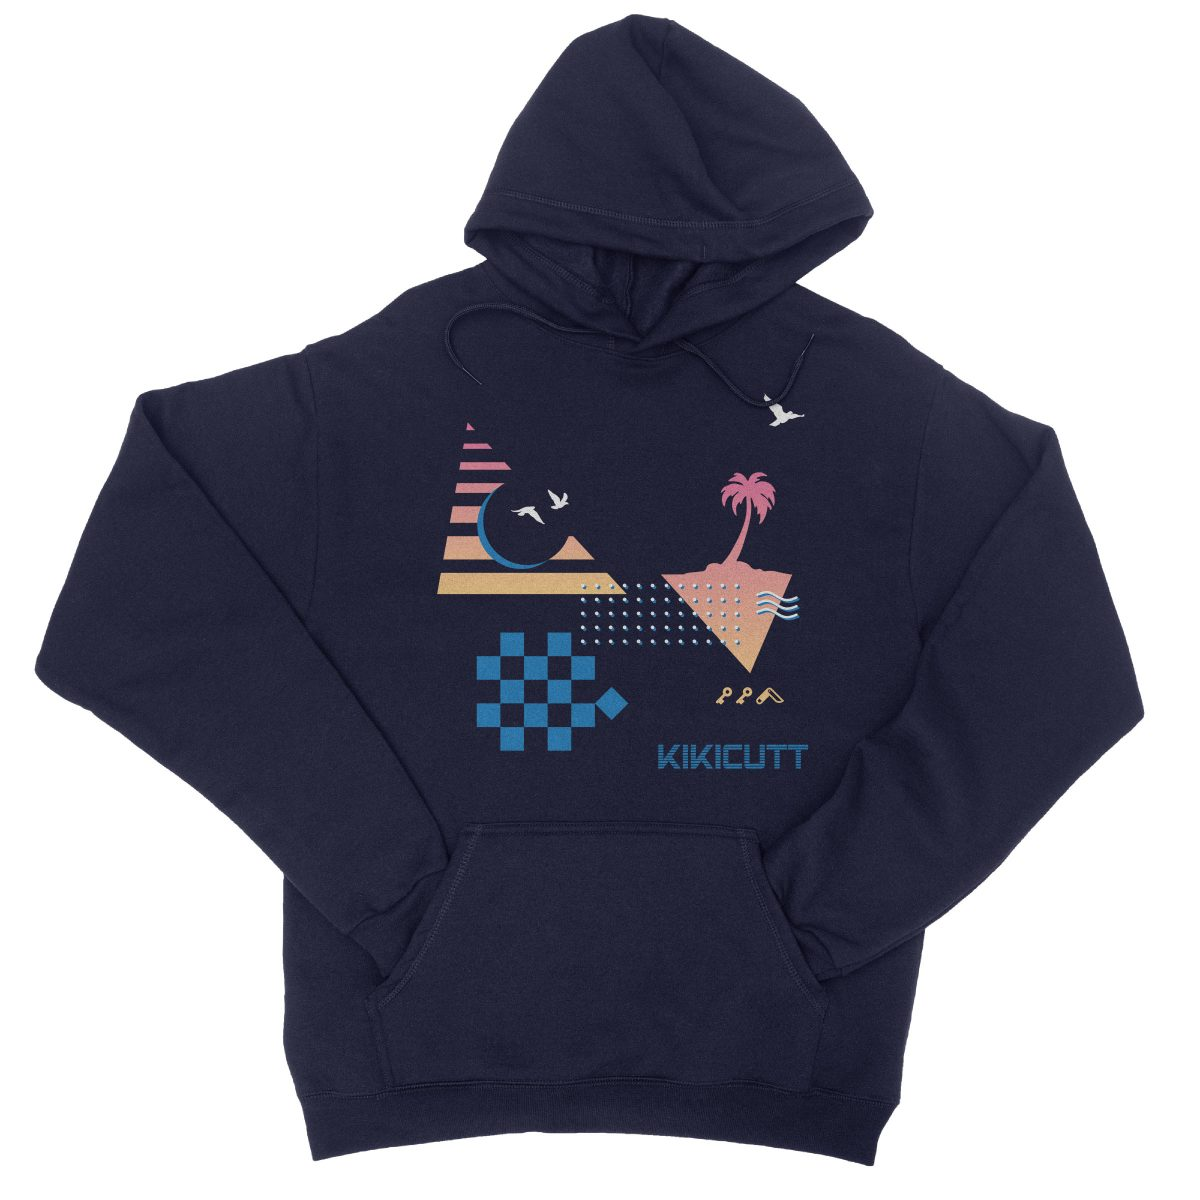 CHECKERED PAST retro throwback 80s style design graphic hoodie in navy